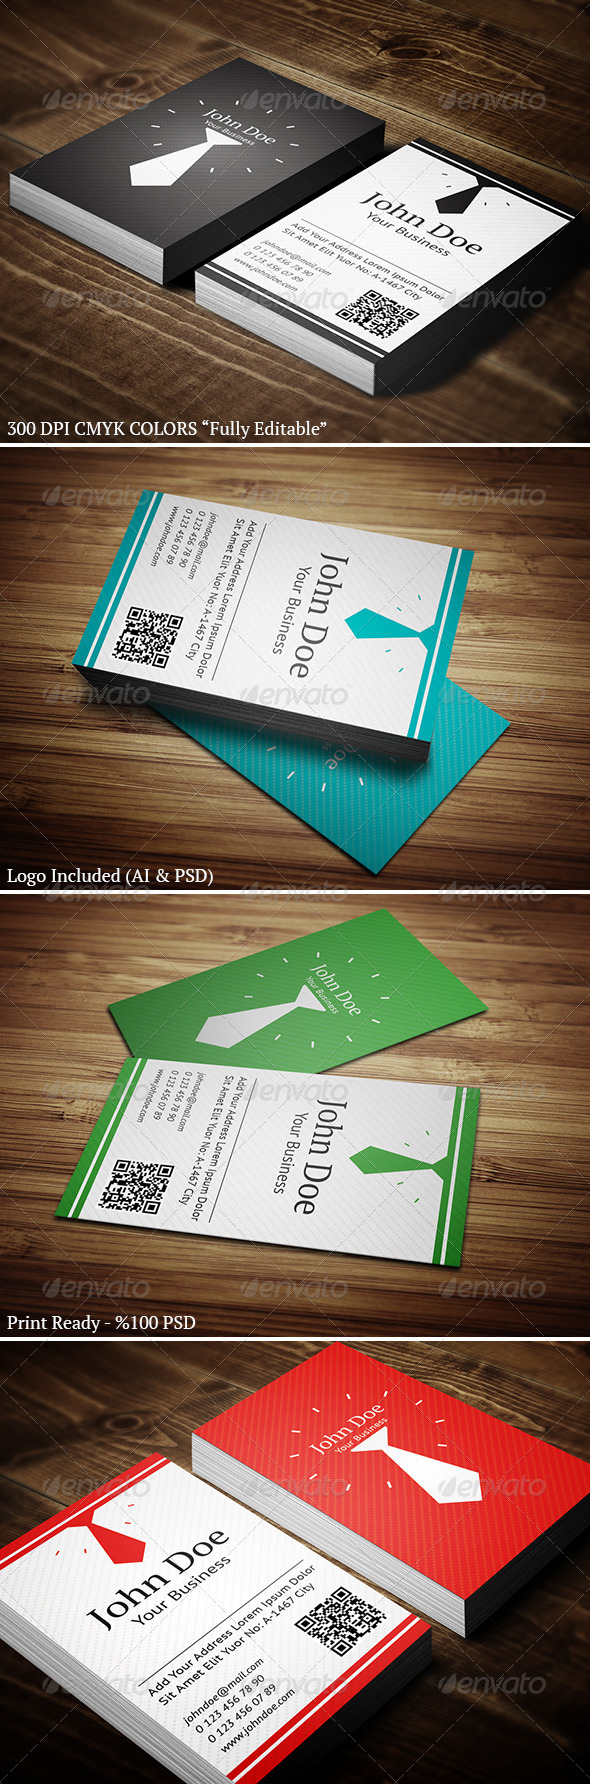 Vertical Business Card 01 - Business Cards Print Templates